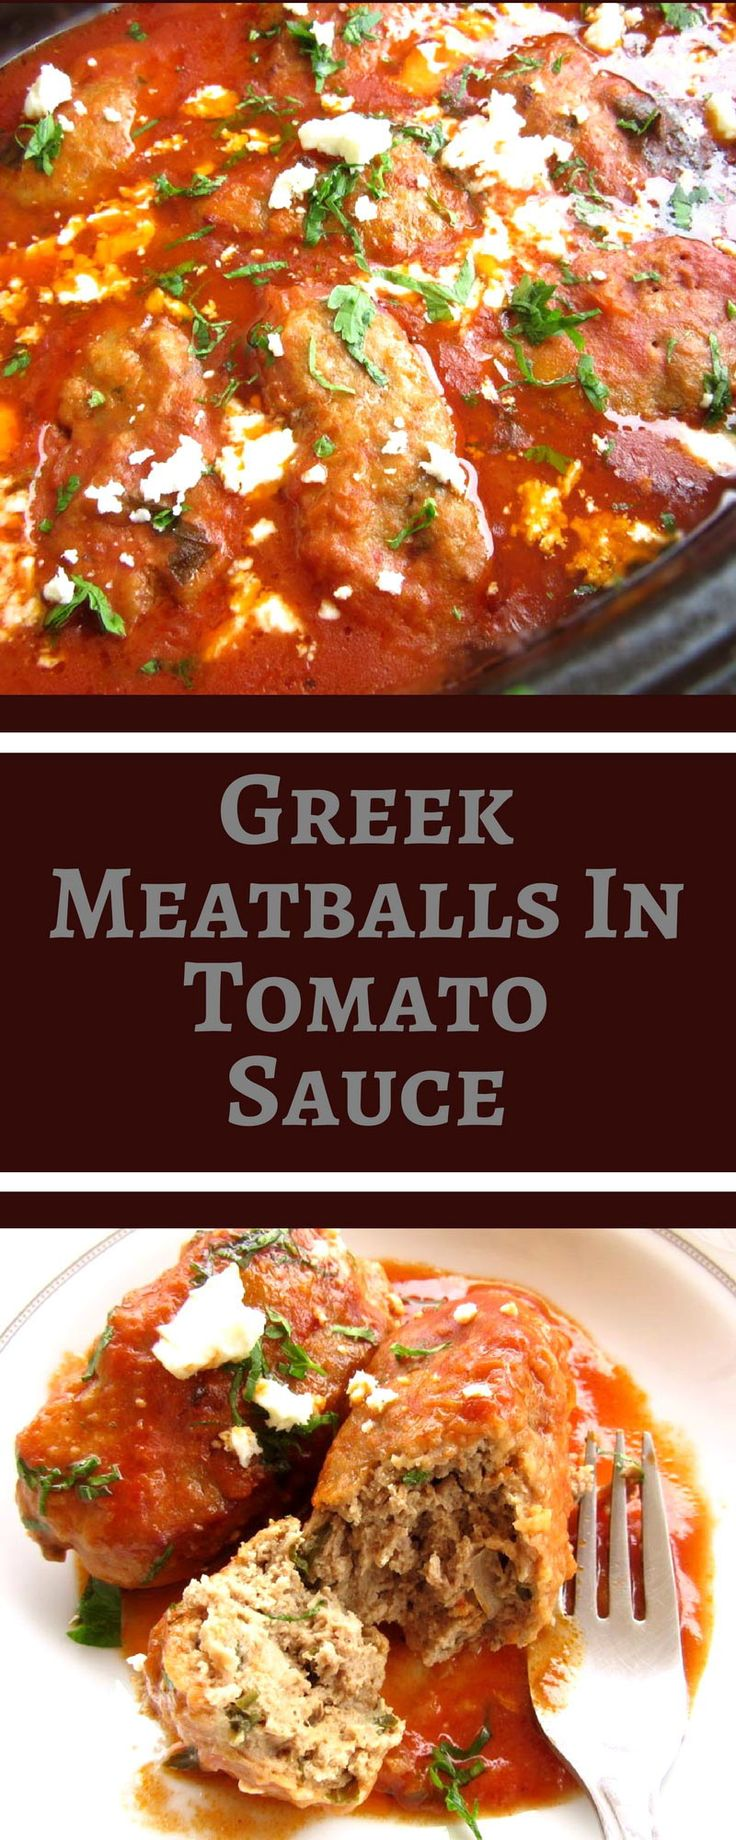 Melt-in-your-mouth meatballs in a flavorful tomato sauce.